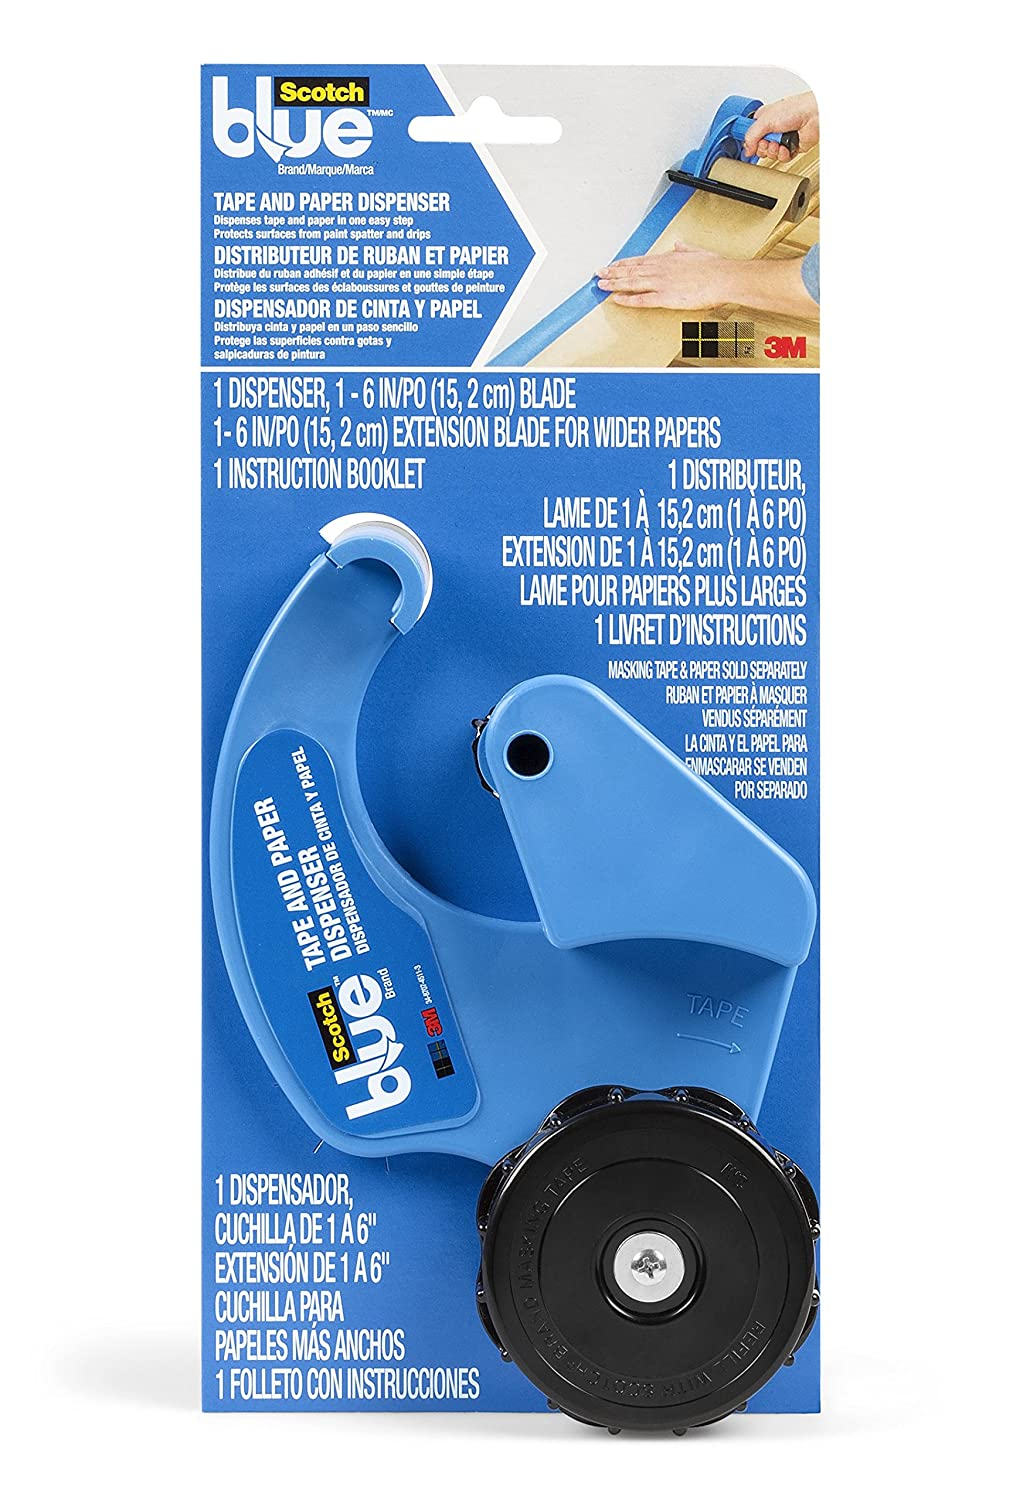 Scotchblue Masking Tape And Paper Dispenser M1000 Sbn Masking